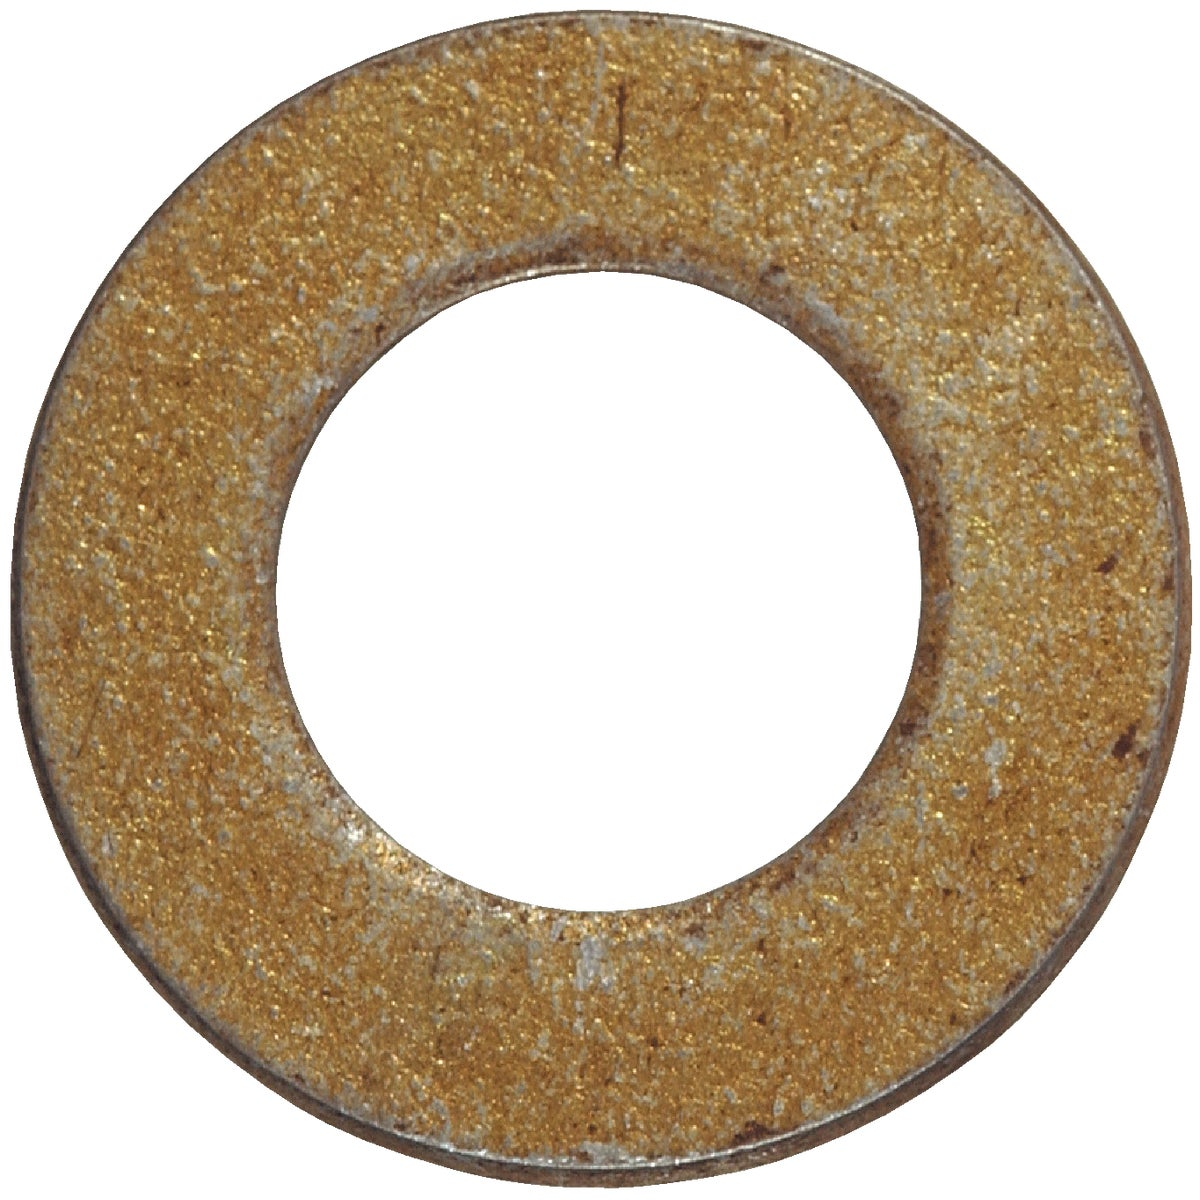 "1/2"" SAE FLAT WASHER - 280326 by Hillman Fastener"